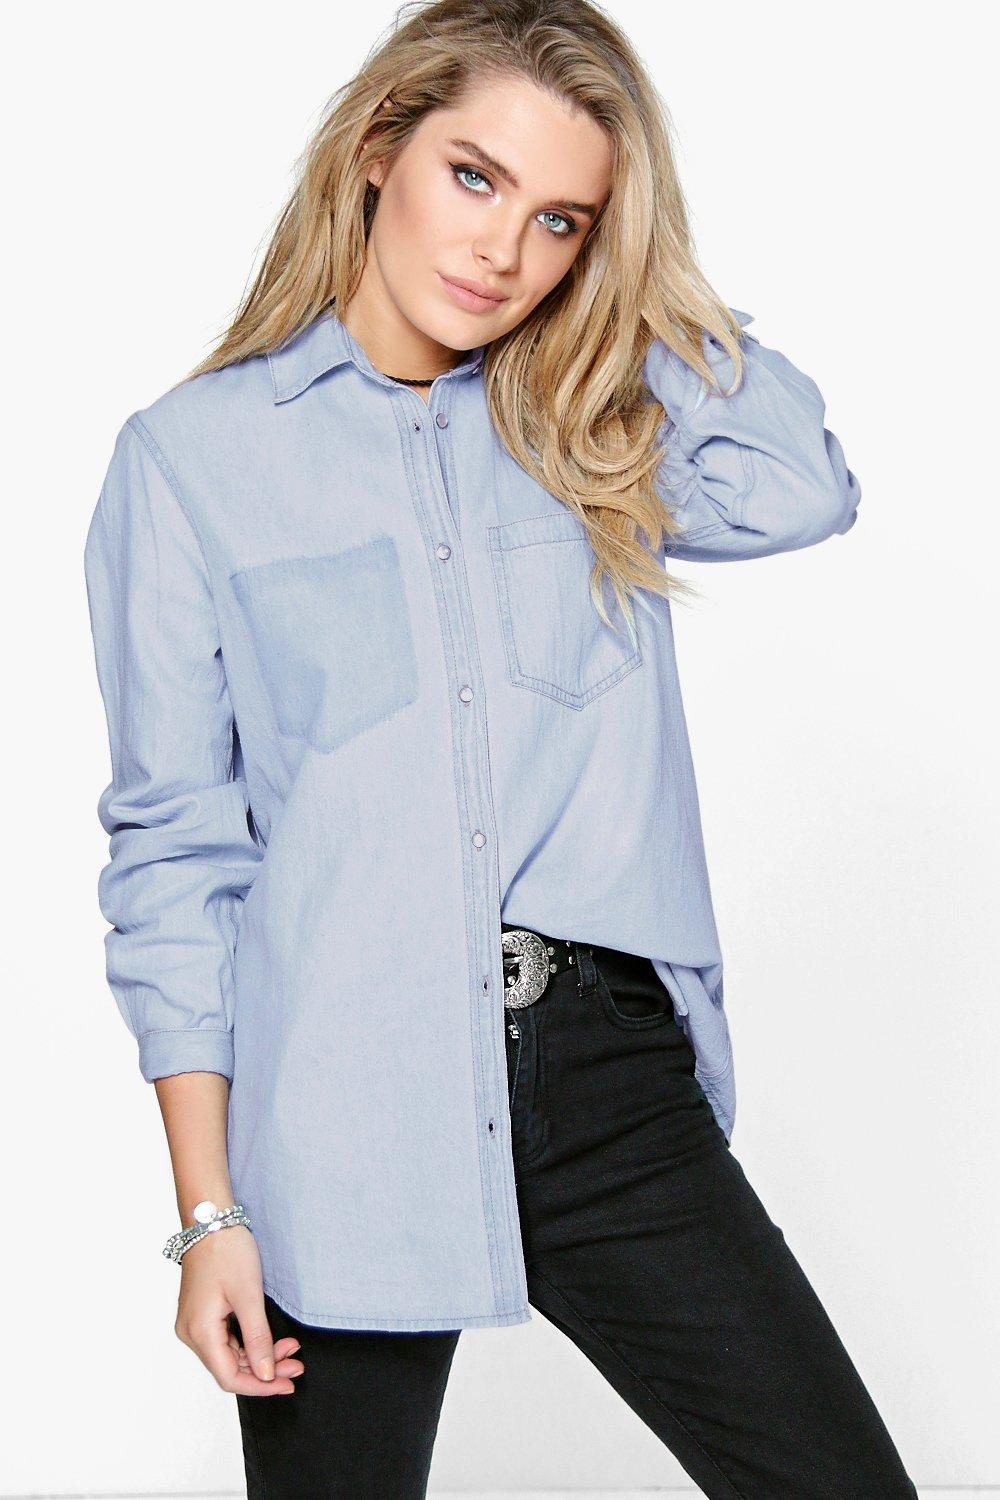 Kaley Slim Fit Distressed Pocket Denim Shirt